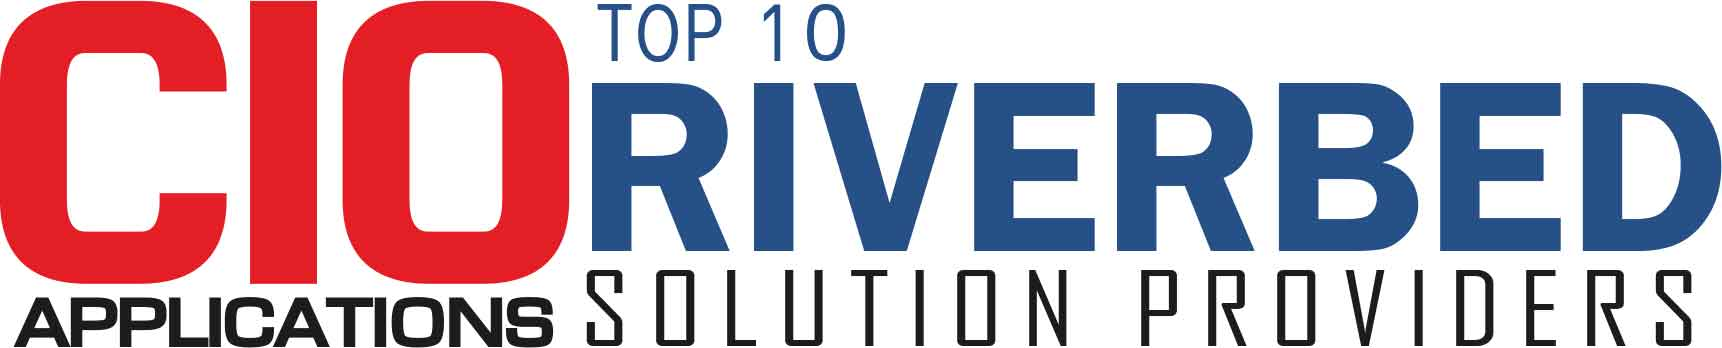 Top 10 Riverbed Companies - 2019